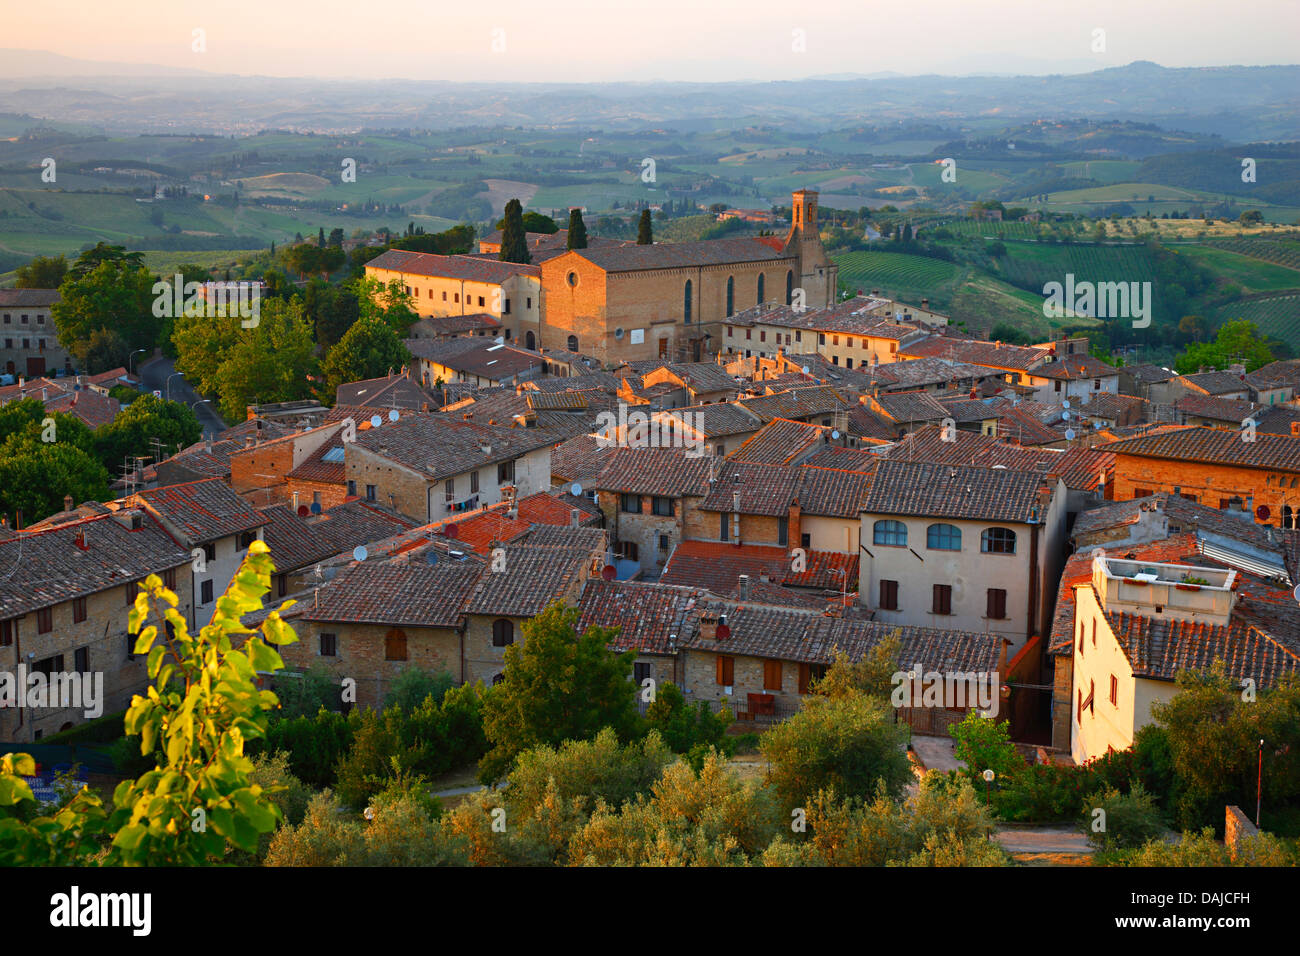 San Gimignano, Sant'Agostino church, Italy Stock Photo